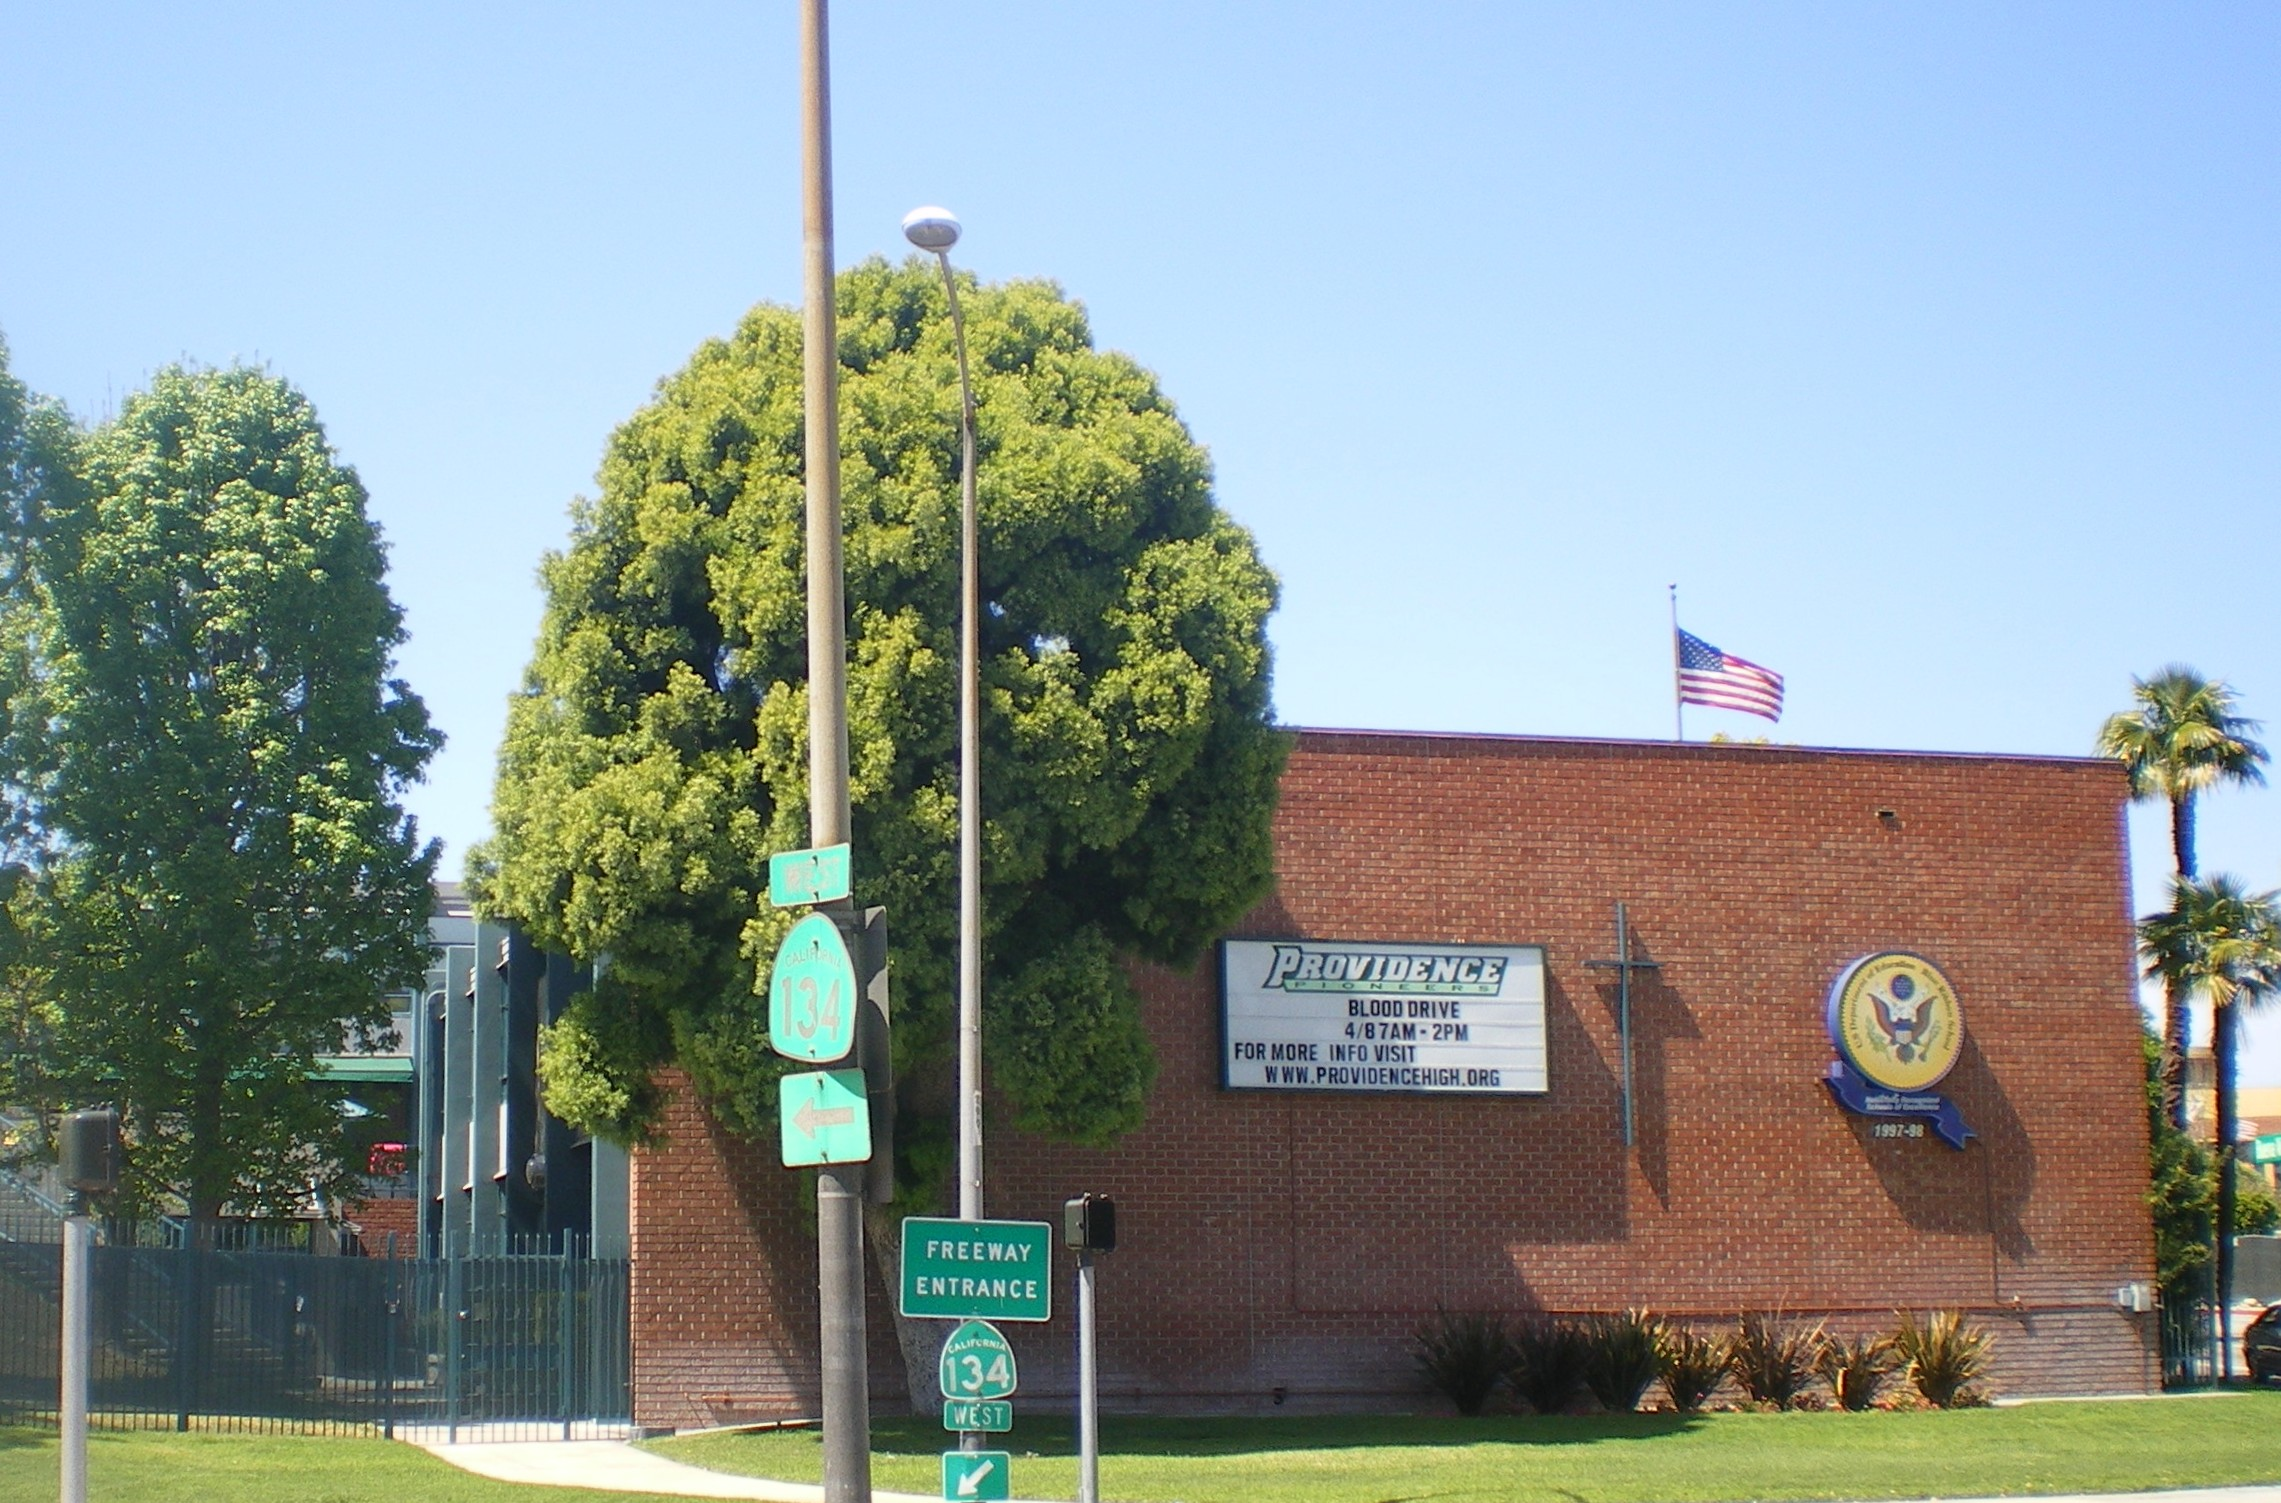 Providence High School is a highly rated, private, Catholic school located in Burbank, CA. It has students in grades with a student-teacher ratio of 13 to 1. Tuition is /5(59).